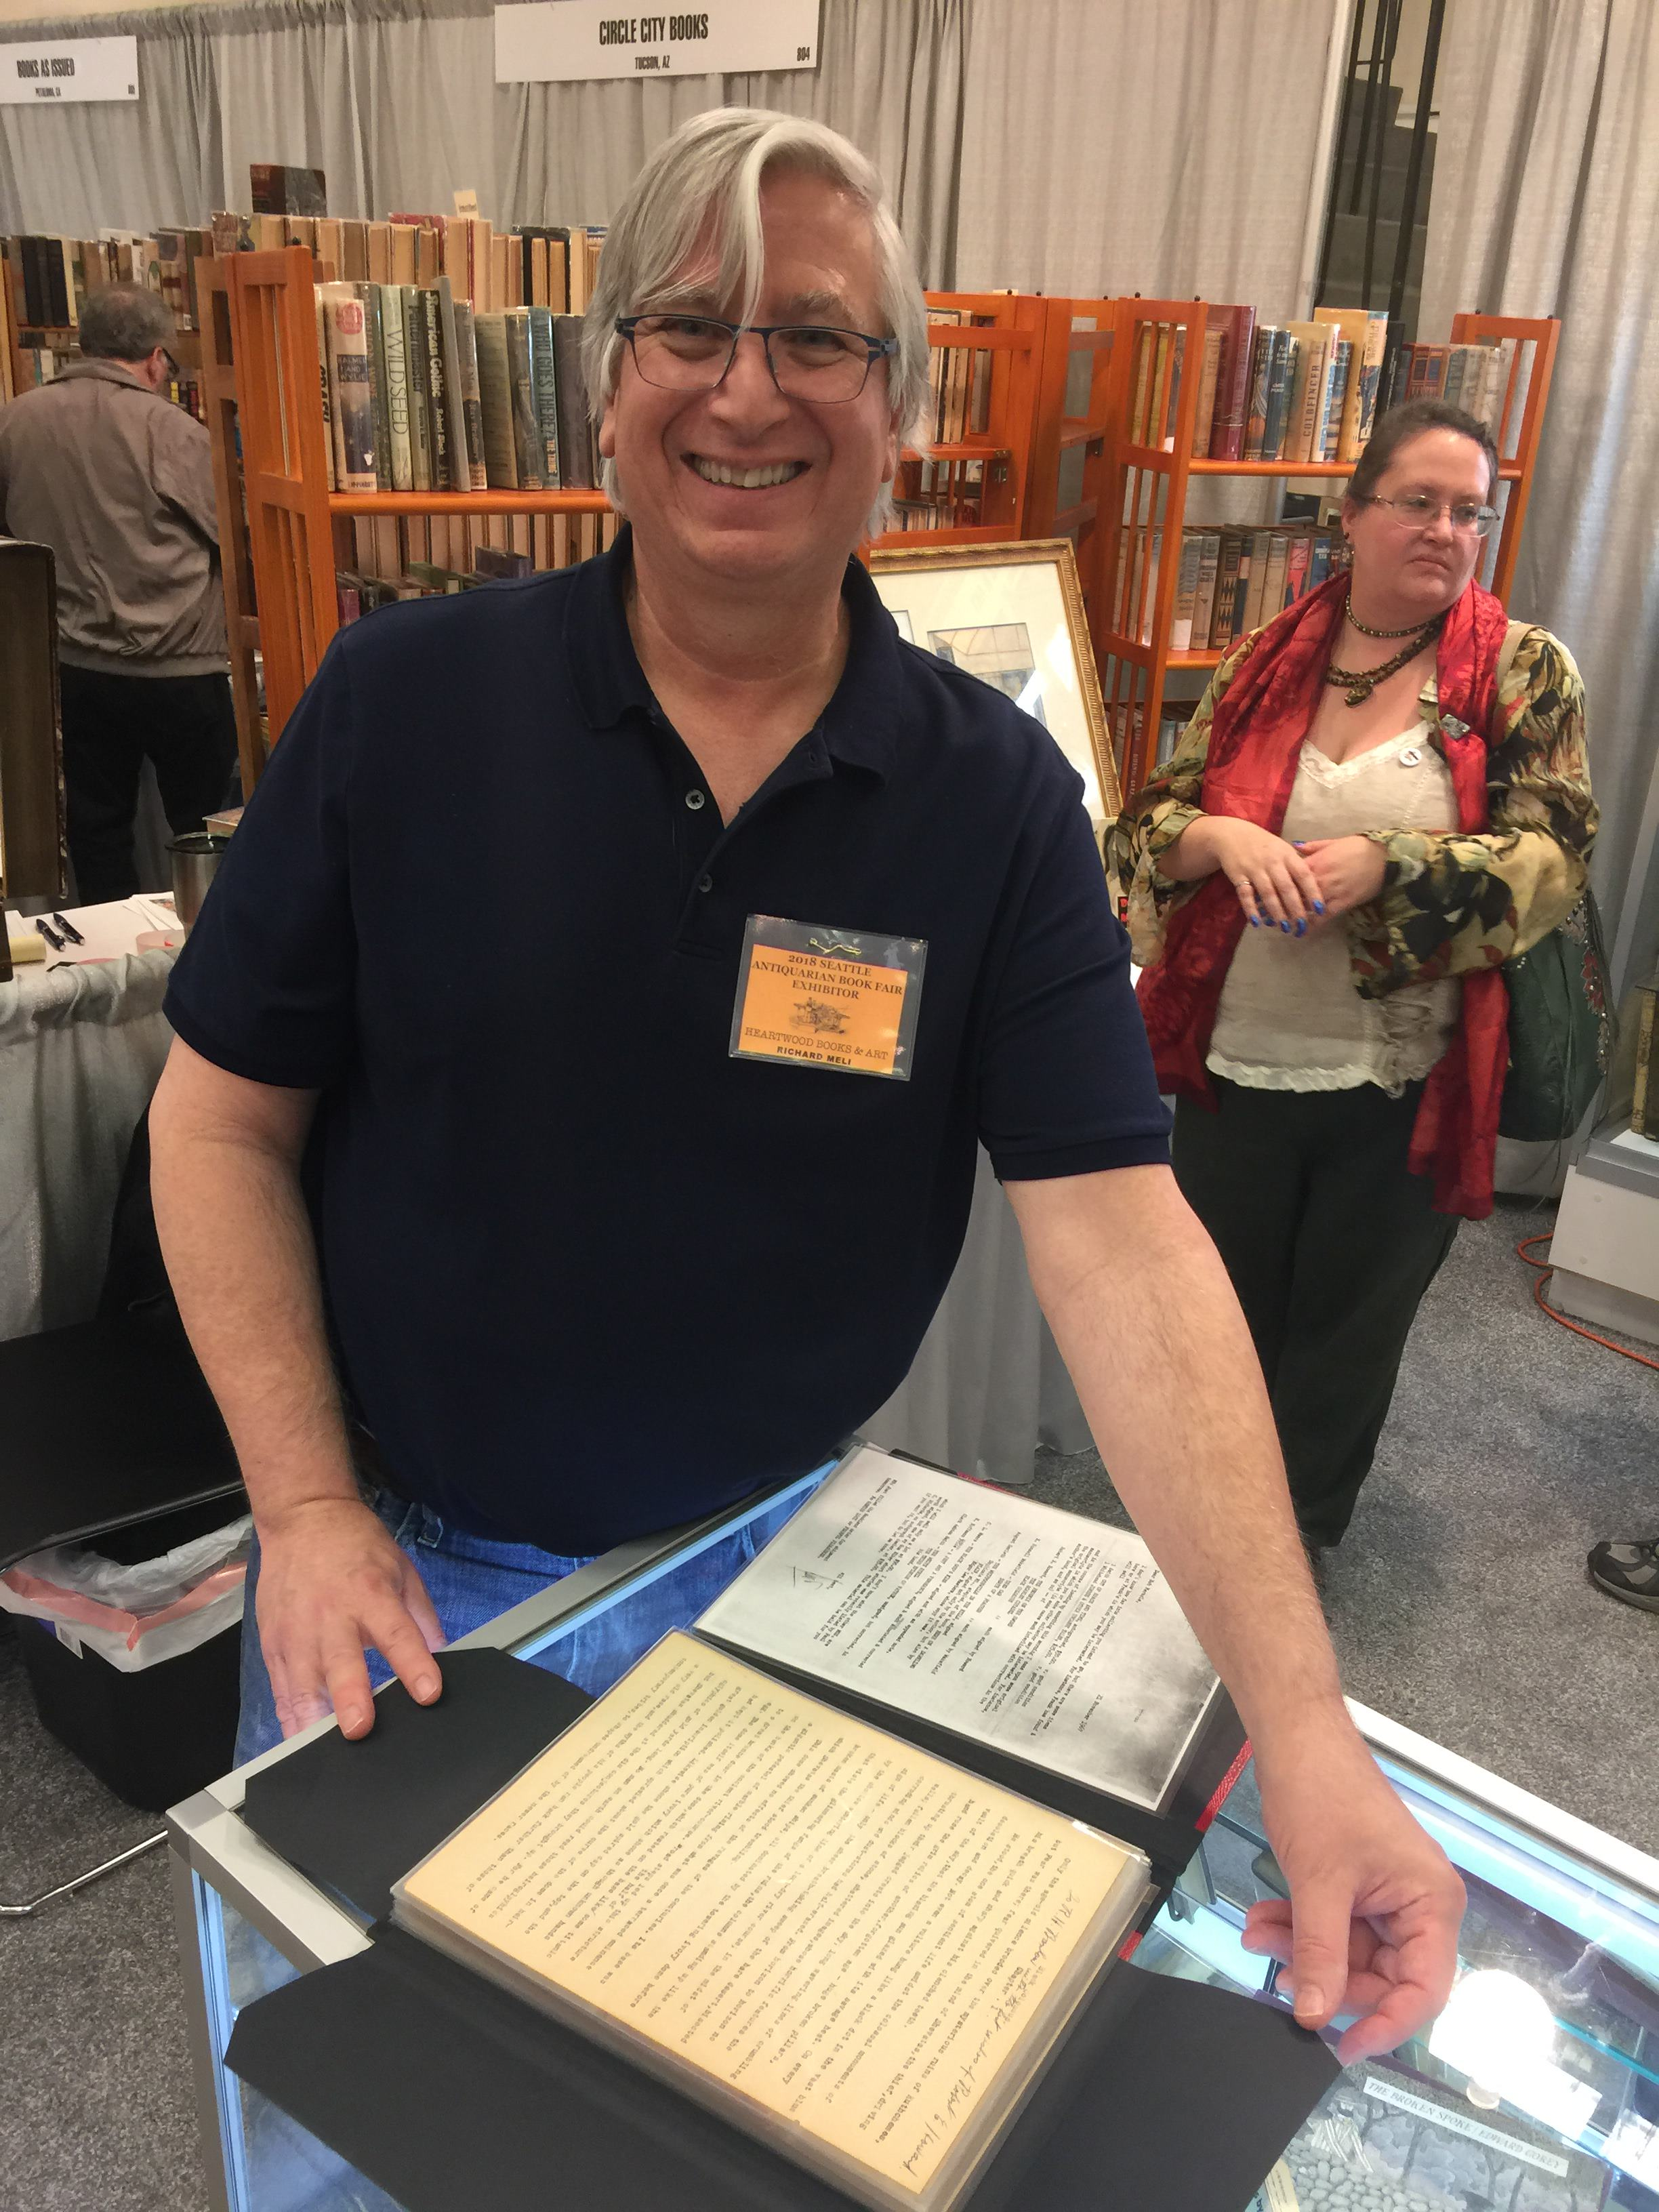 Dr. Richard Meli of Heartwood Books showing me a treasure - see photos below